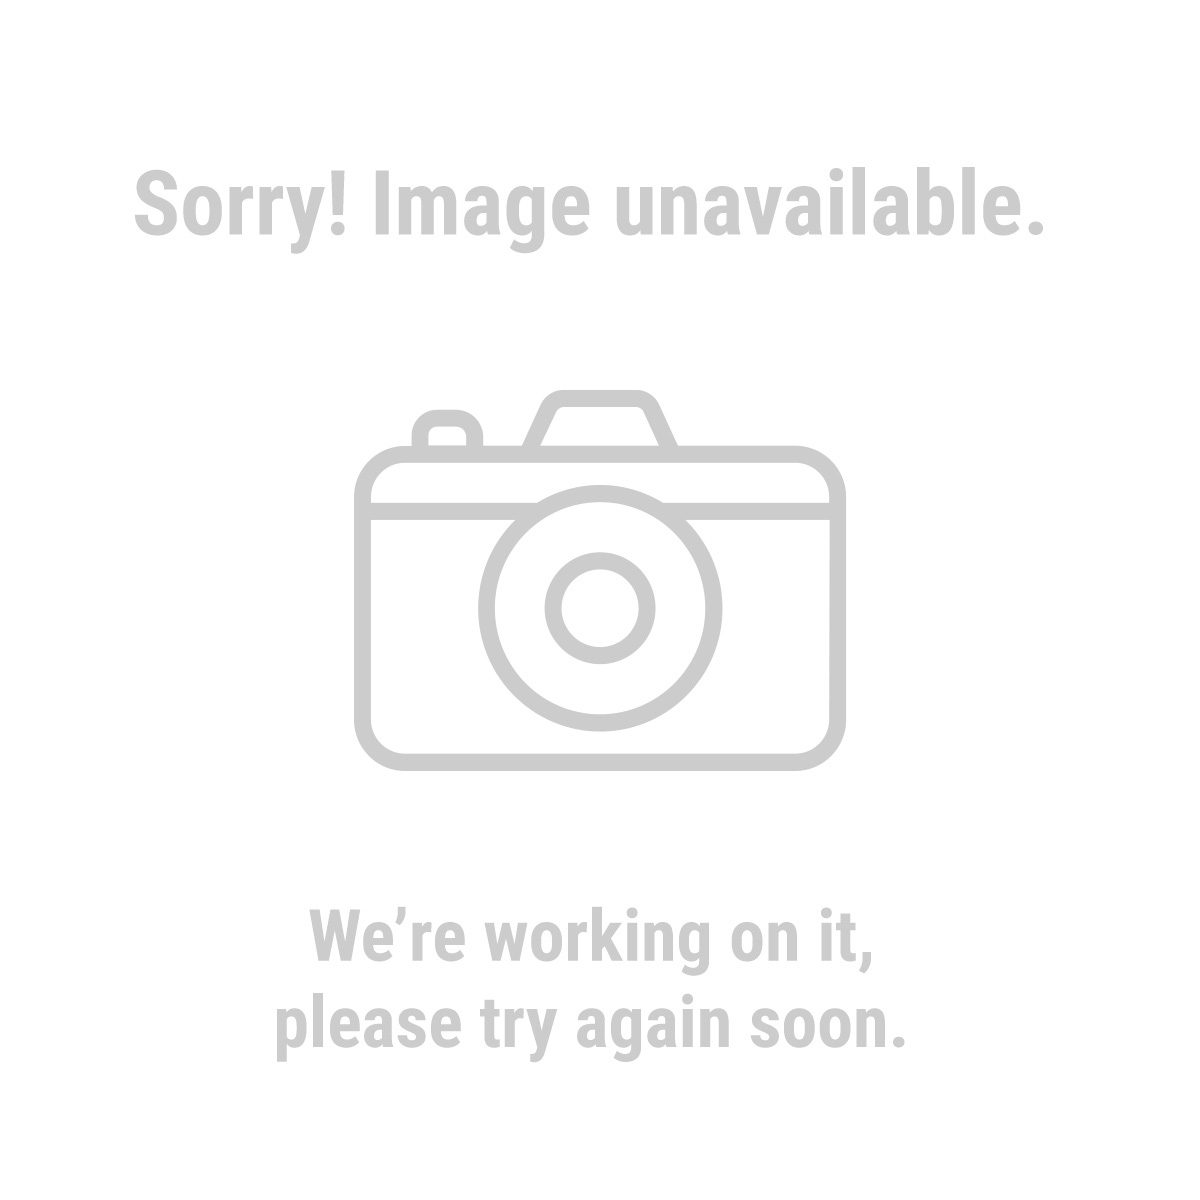 Central Machinery 95668 1 Horsepower Wood Shaper